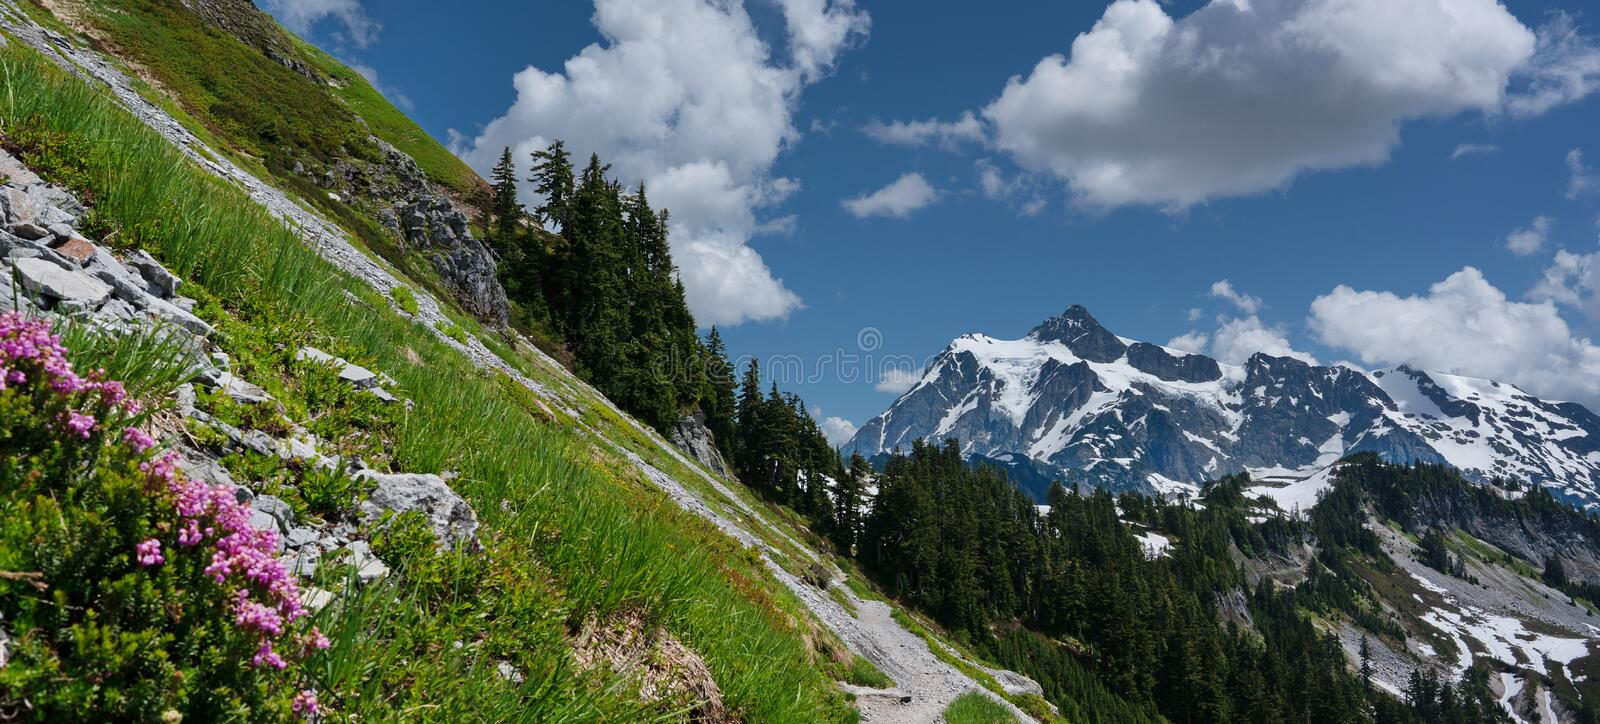 Flowers and snowcapped mountains landscape with blue sky and white clouds. Mt. Baker-Snoqualmie National Forest stock photos